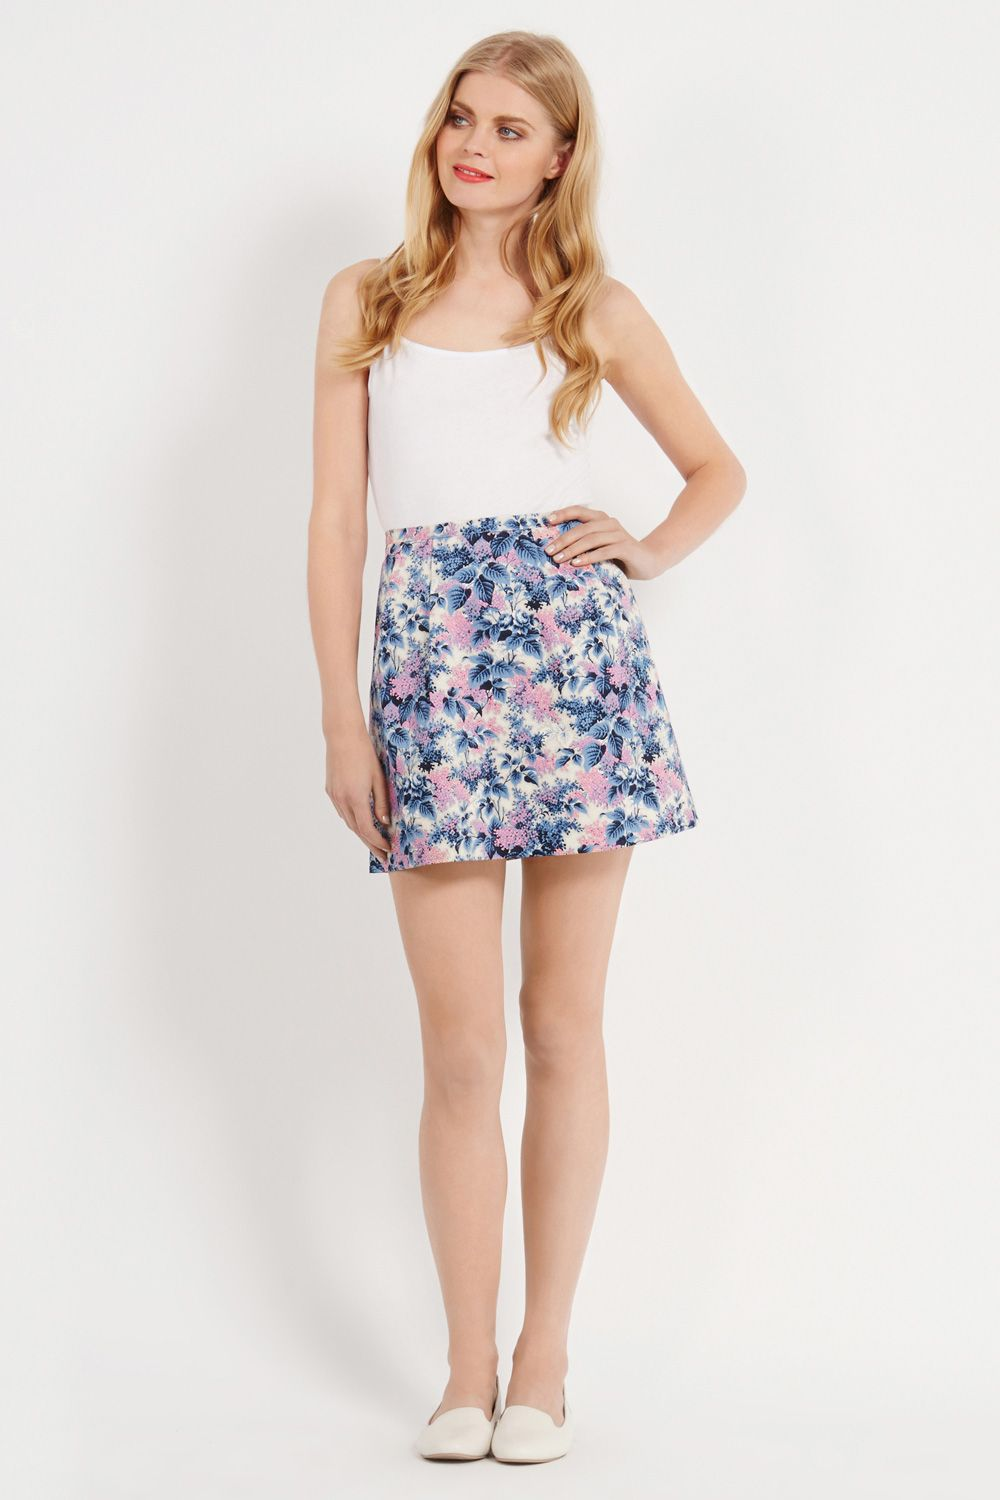 Botanical buddleia print skirt